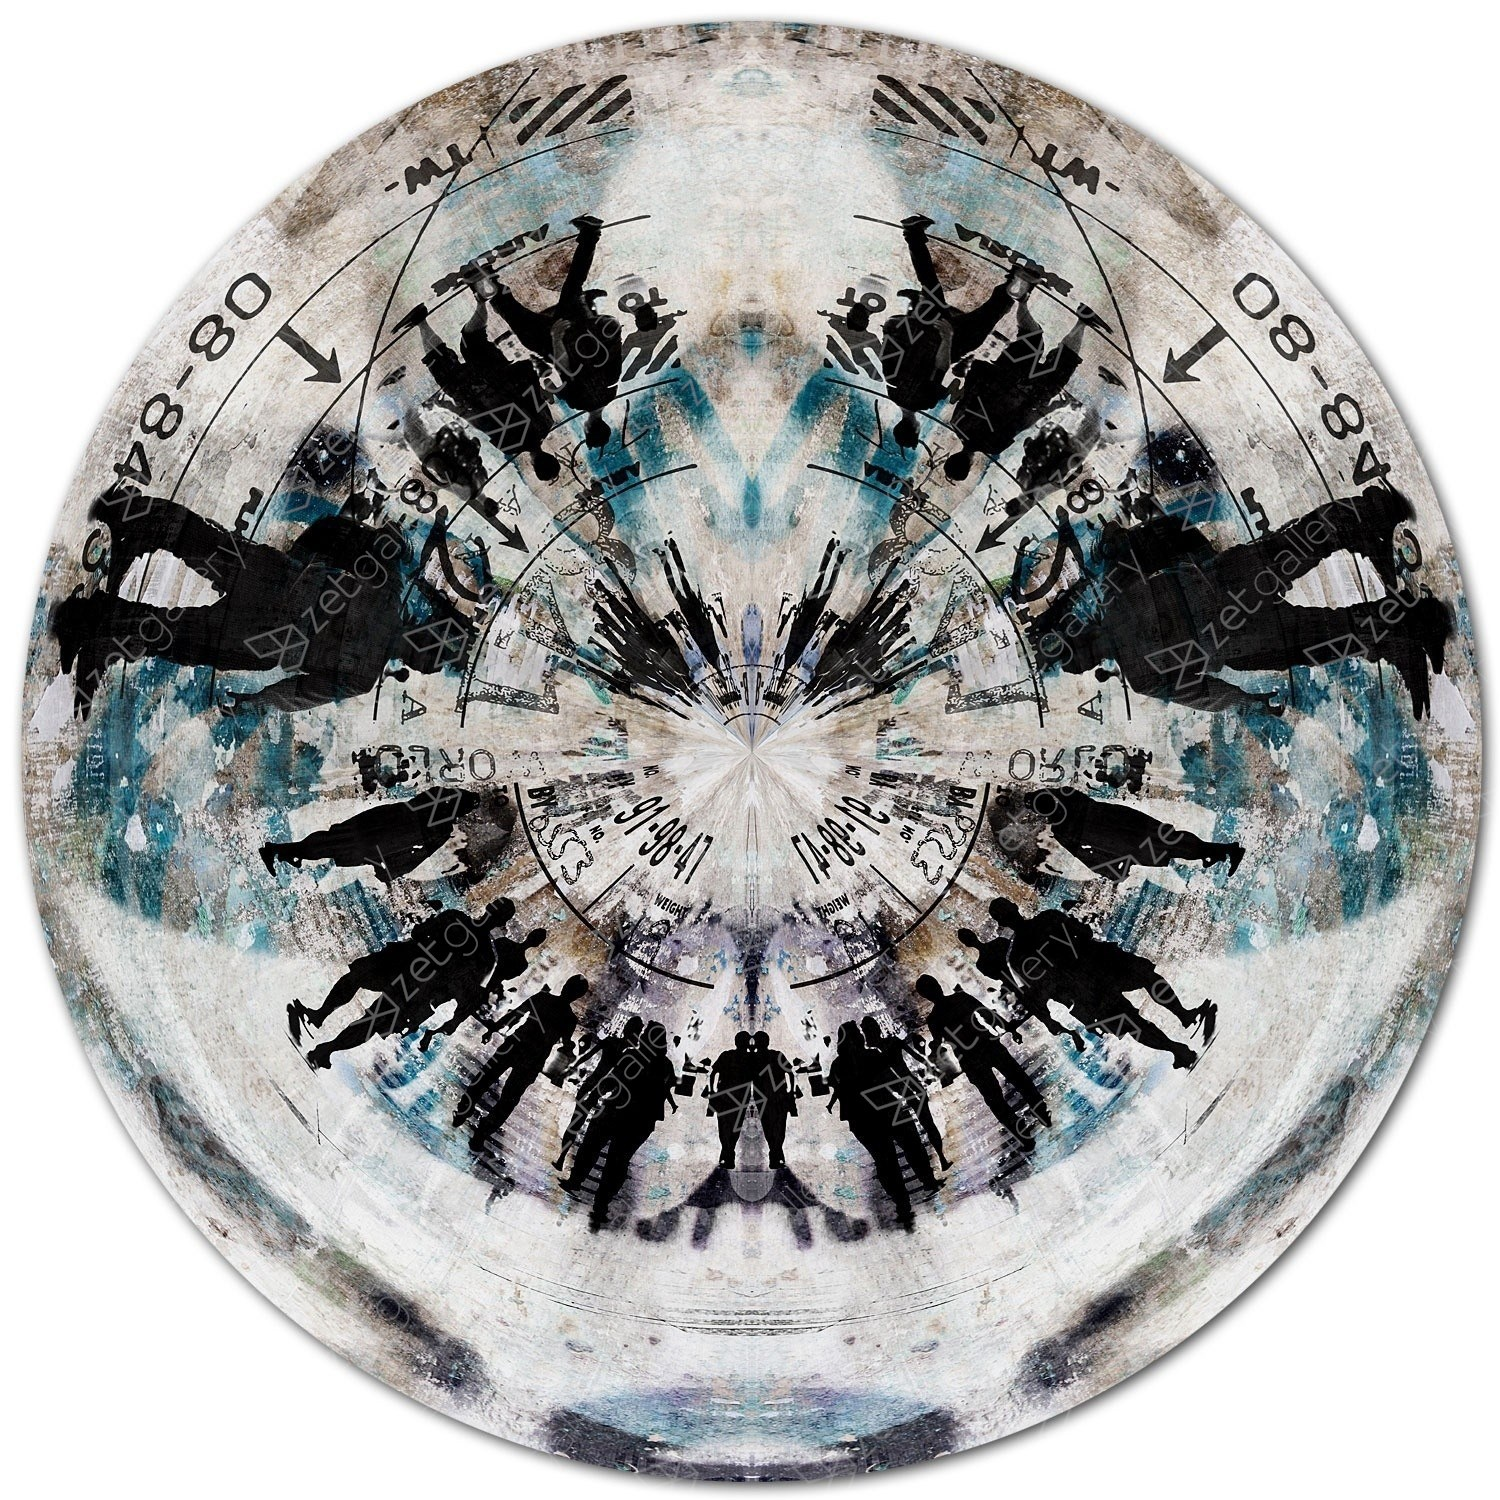 CIRCULAR AIR 8, Ø 120 cm, original Abstract Digital Photography by Sven Pfrommer